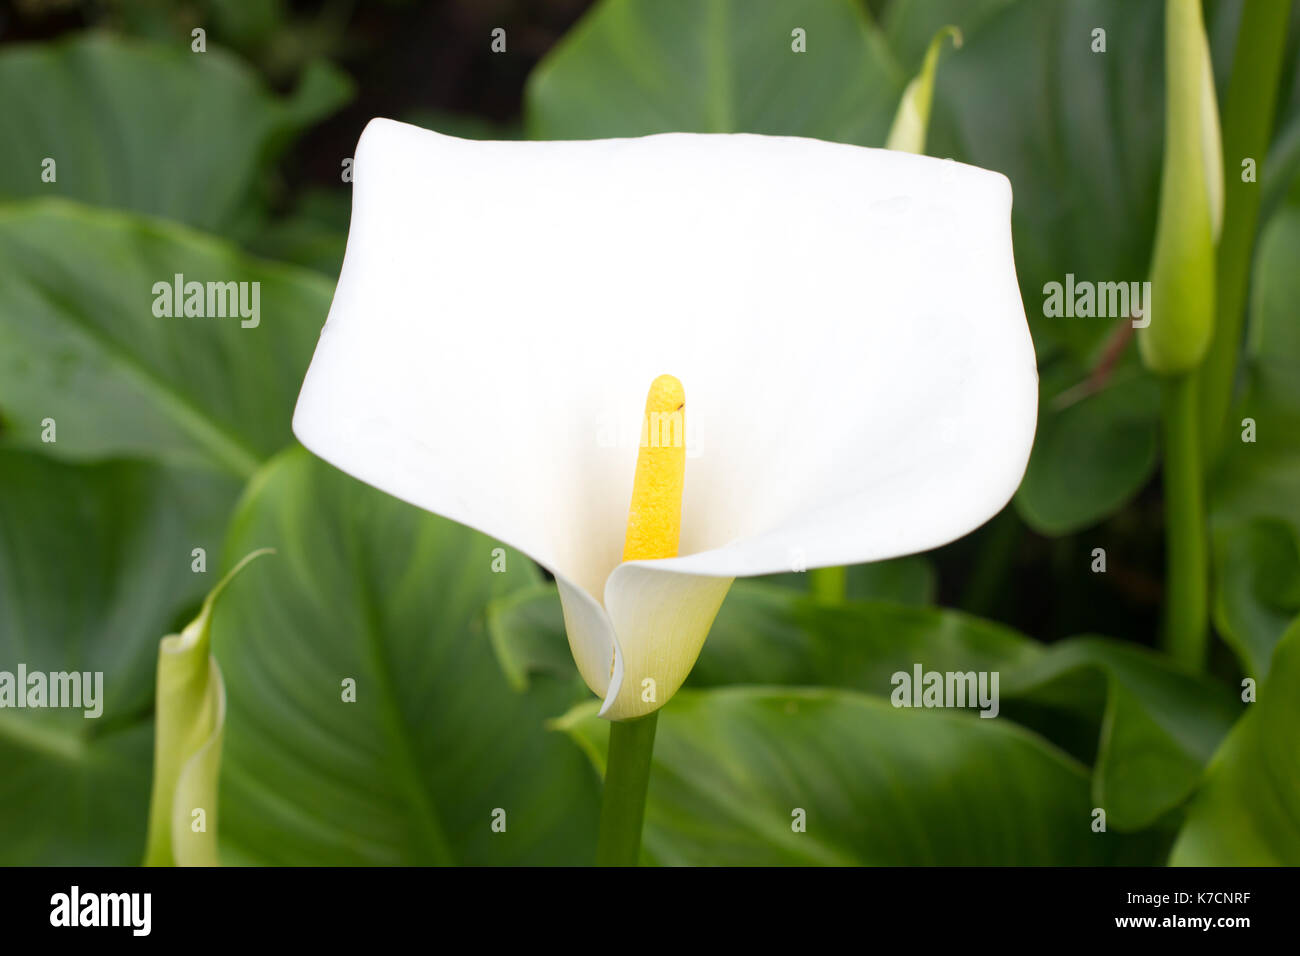 bog arum lily stockfotos bog arum lily bilder alamy. Black Bedroom Furniture Sets. Home Design Ideas